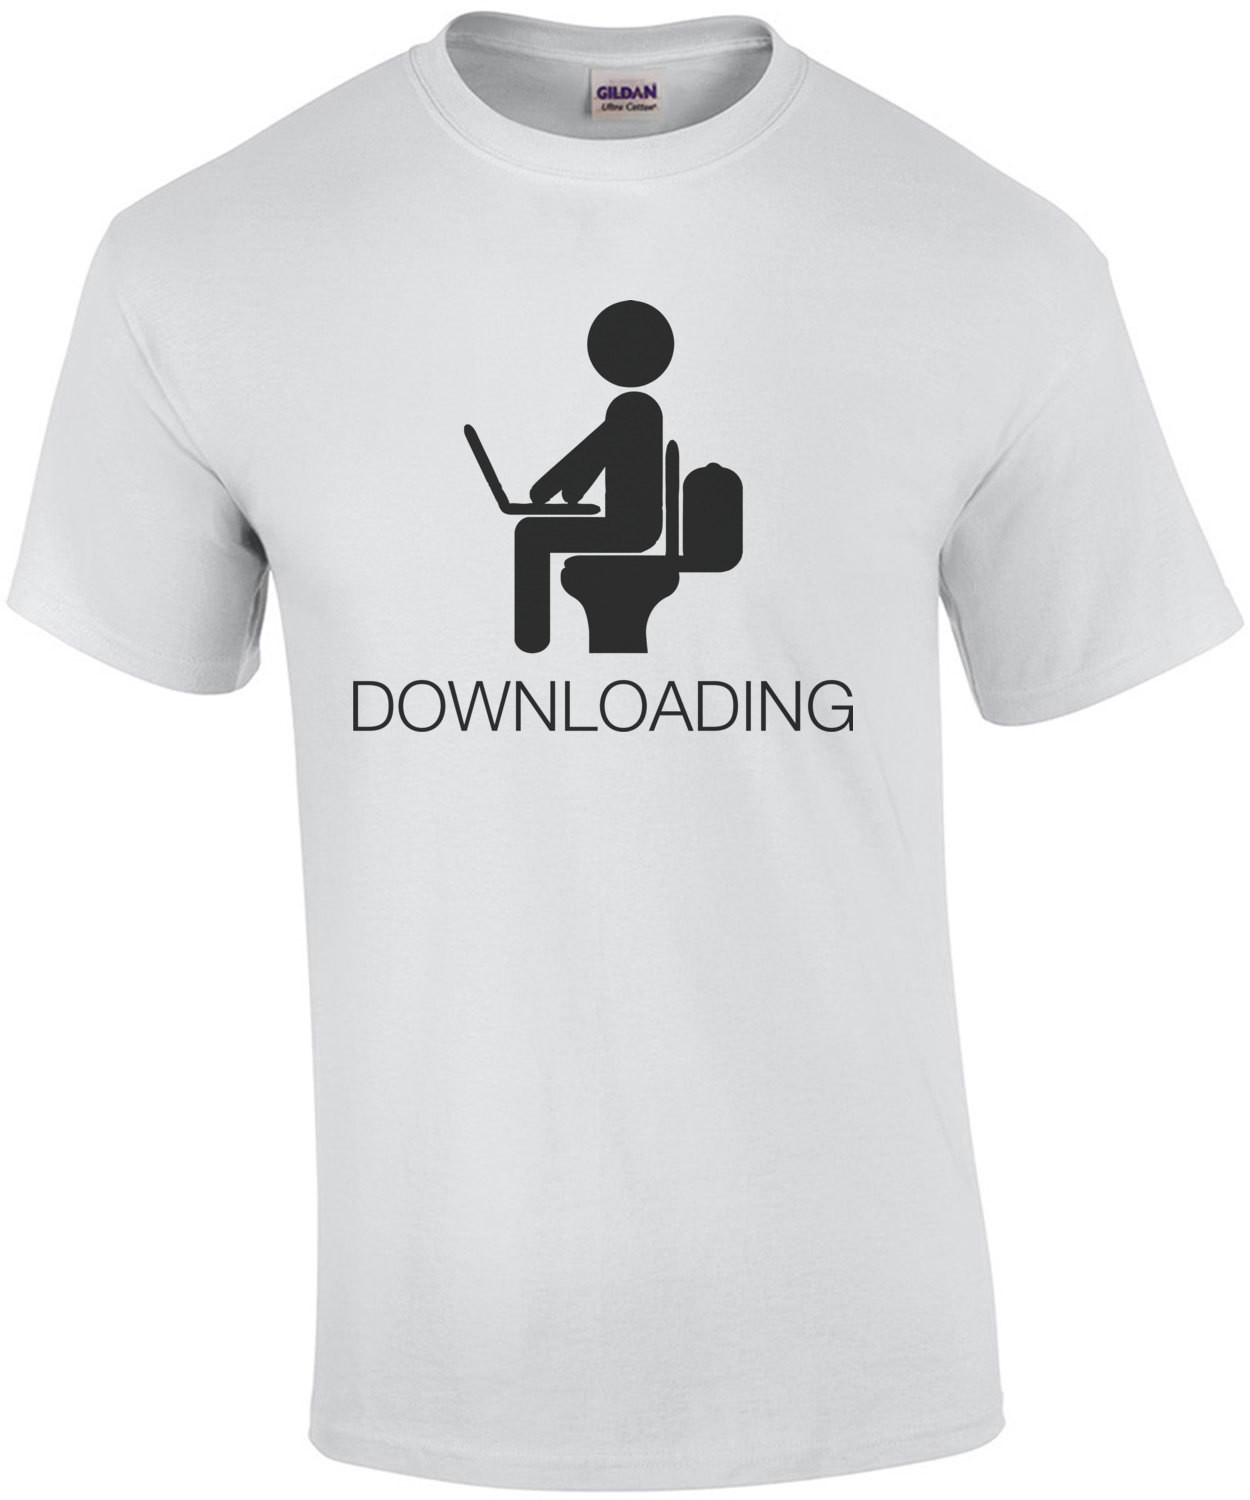 Downloading - Toilet Humor T-Shirt